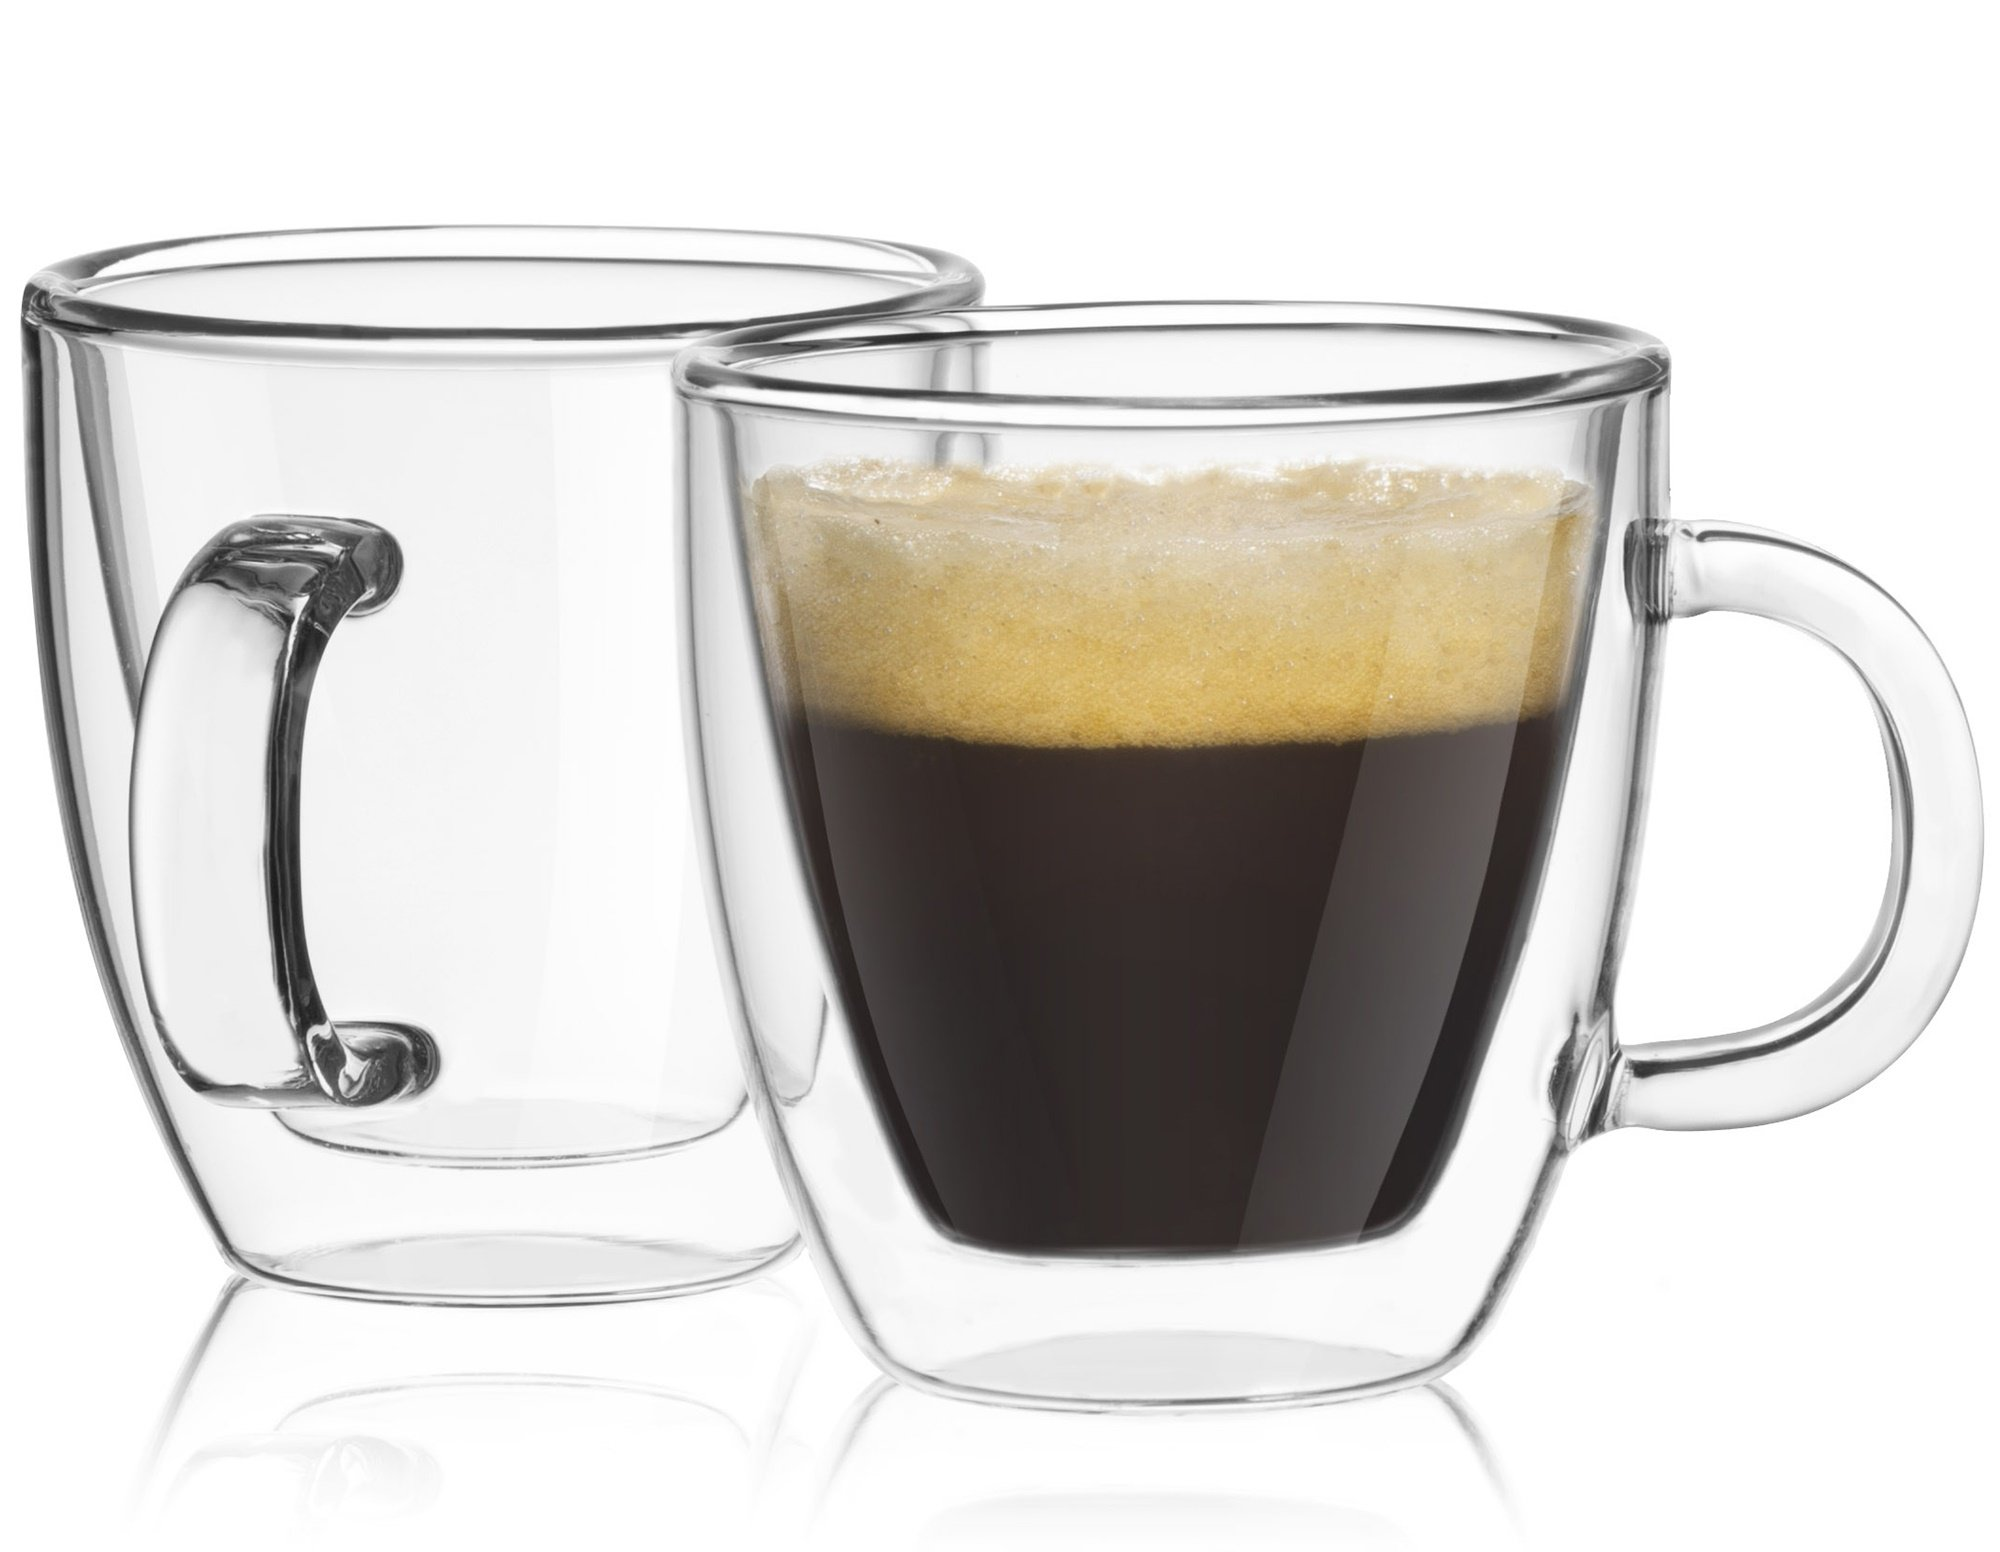 JoyJolt Savor Double Wall Insulated glasses Espresso Mugs Set of 2, 5.4-Ounces by JoyJolt (Image #1)